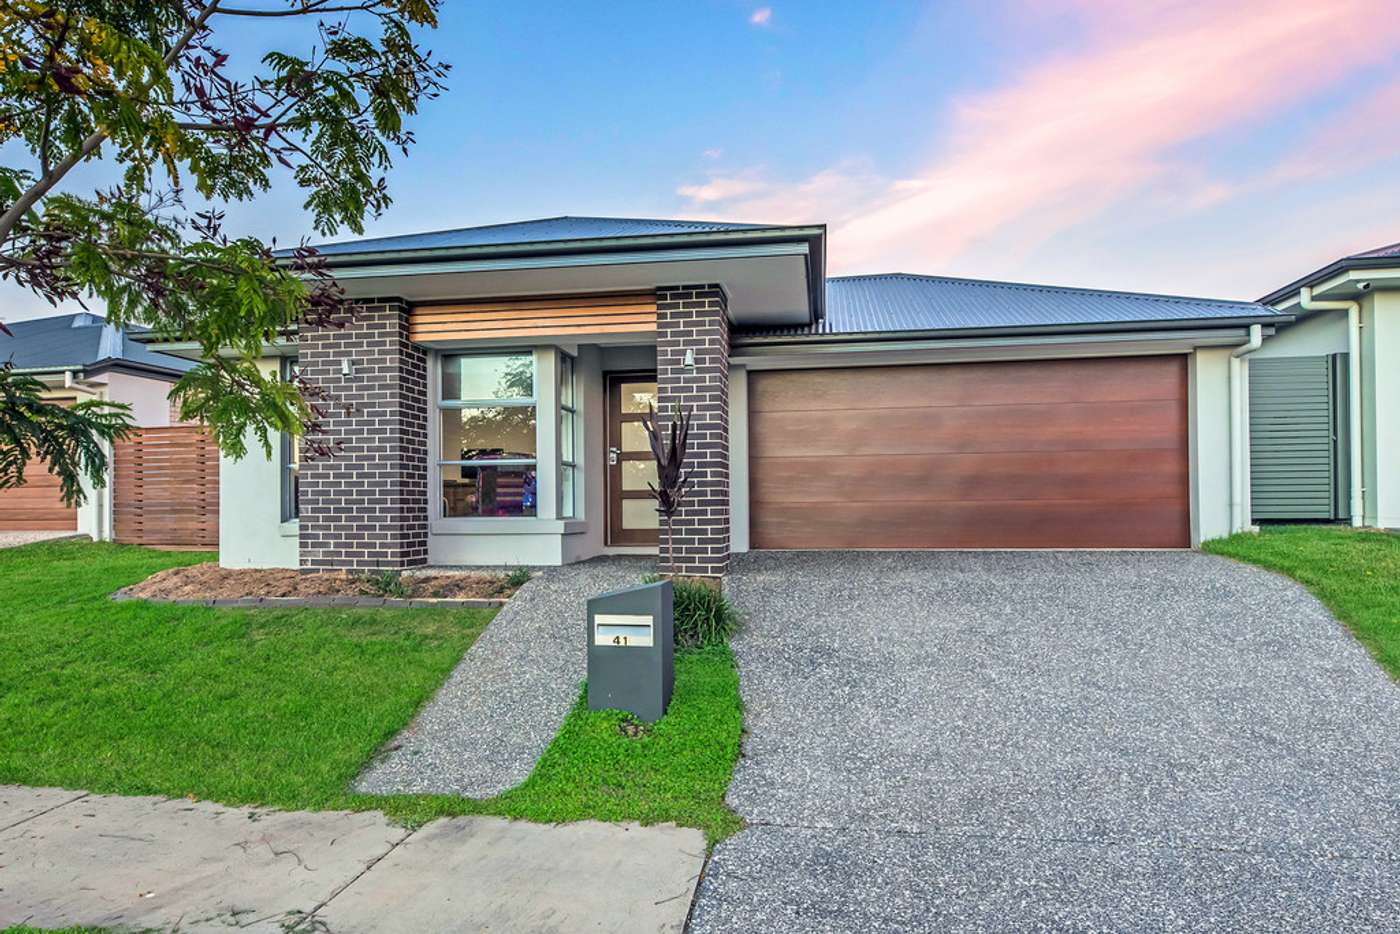 Main view of Homely house listing, 41 Danbulla Street, South Ripley QLD 4306